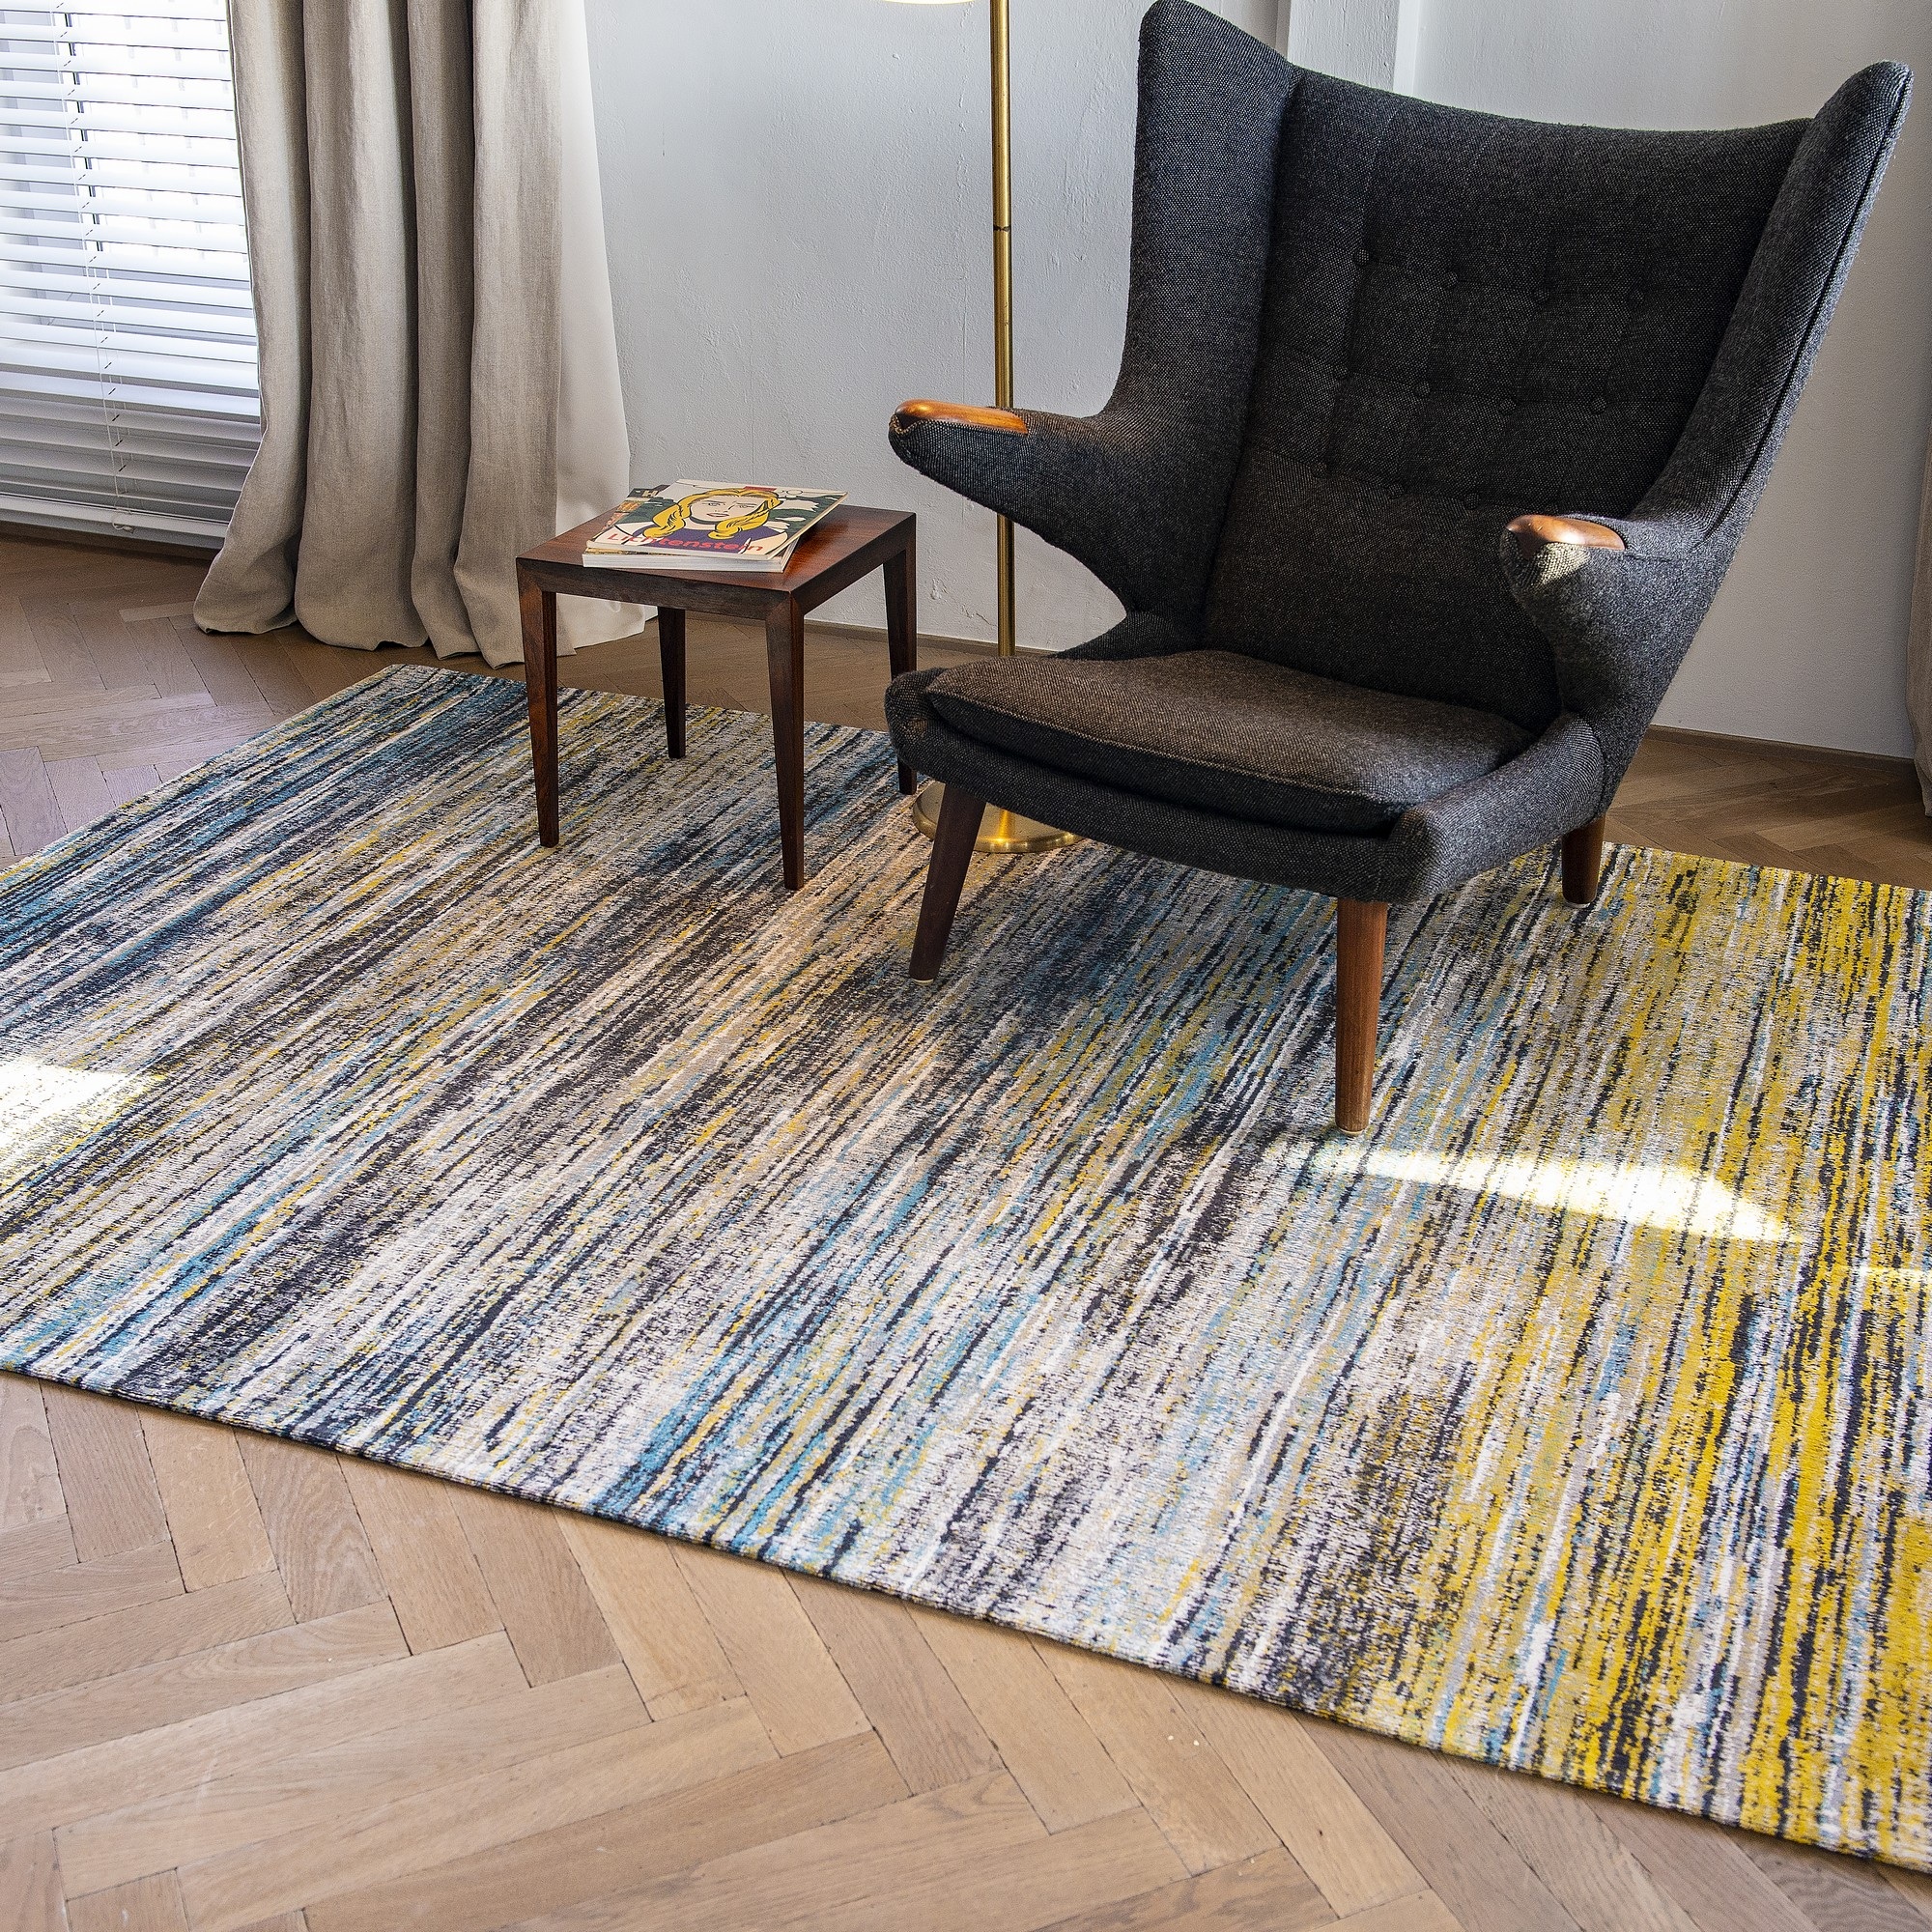 World Map Rug Costco: Sari Collection Rugs 8876 In More Sandalwood Buy Online